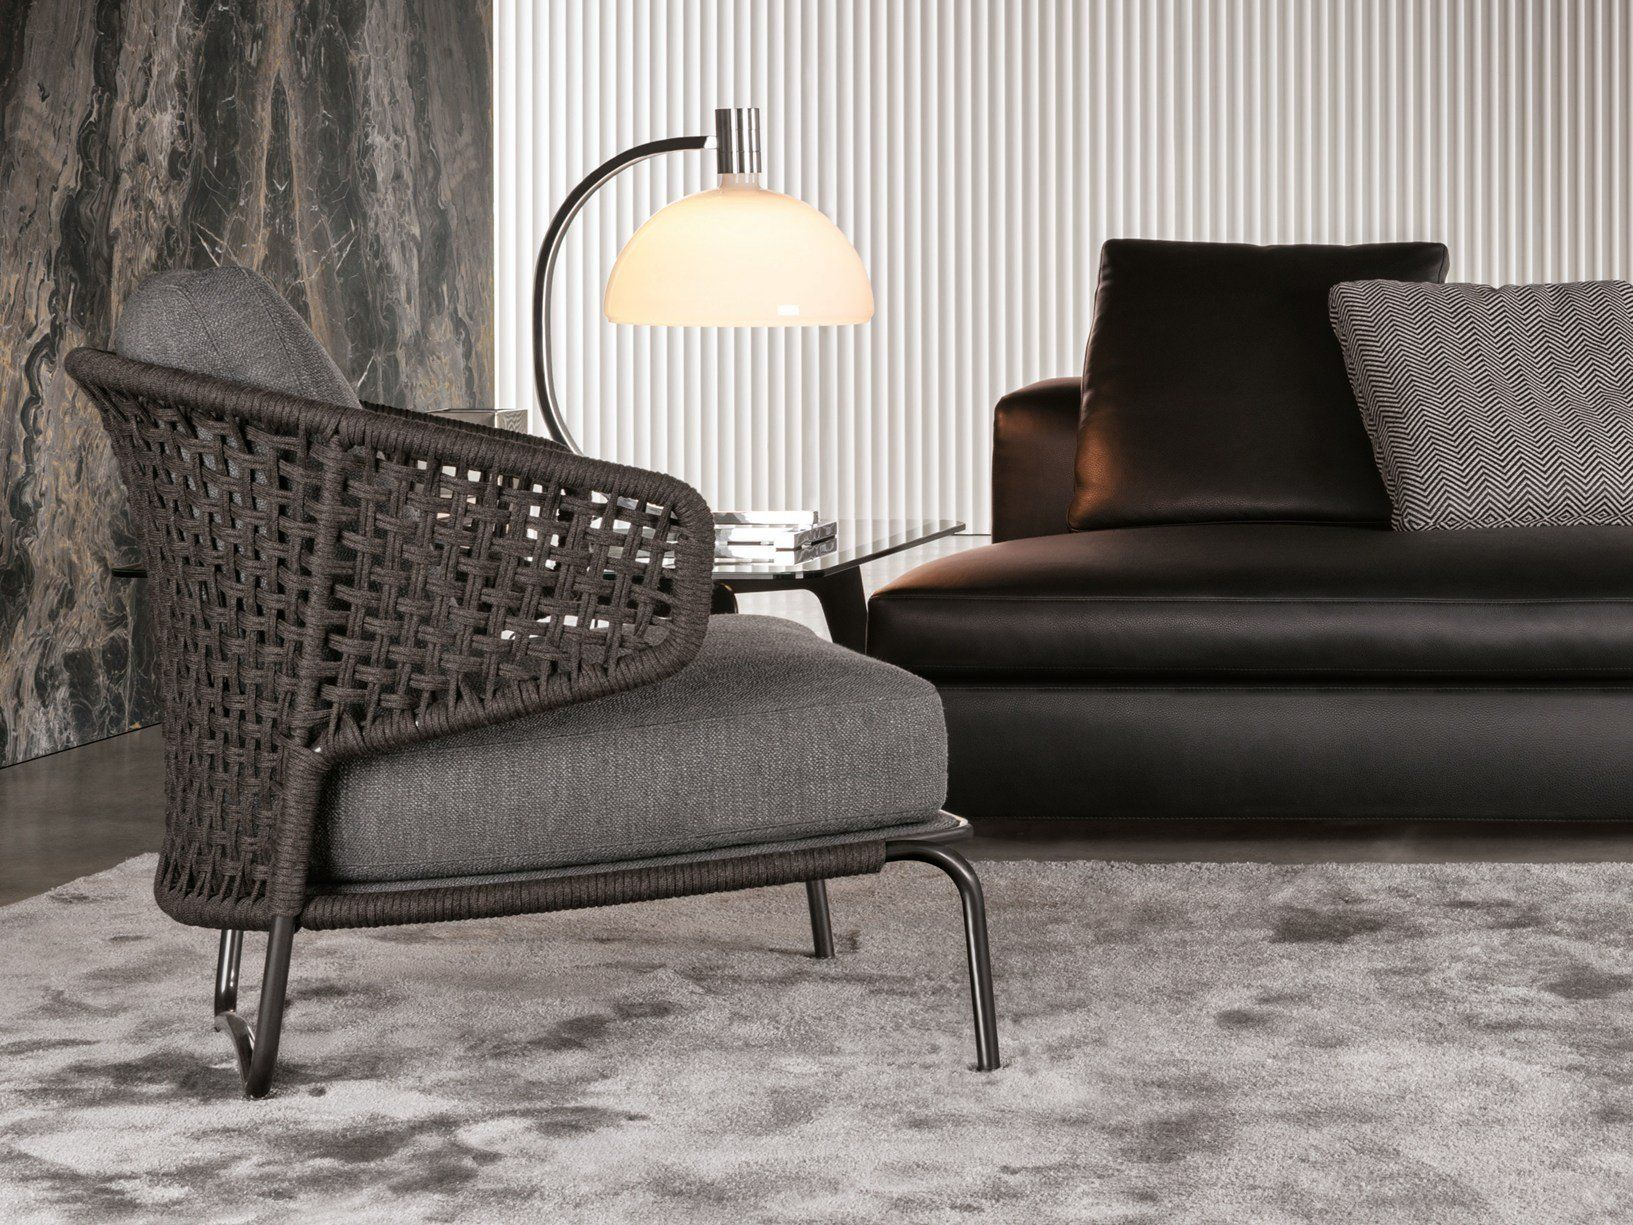 Design Bank Minotti.Rodolfo Dordoni Design New Minotti Collections